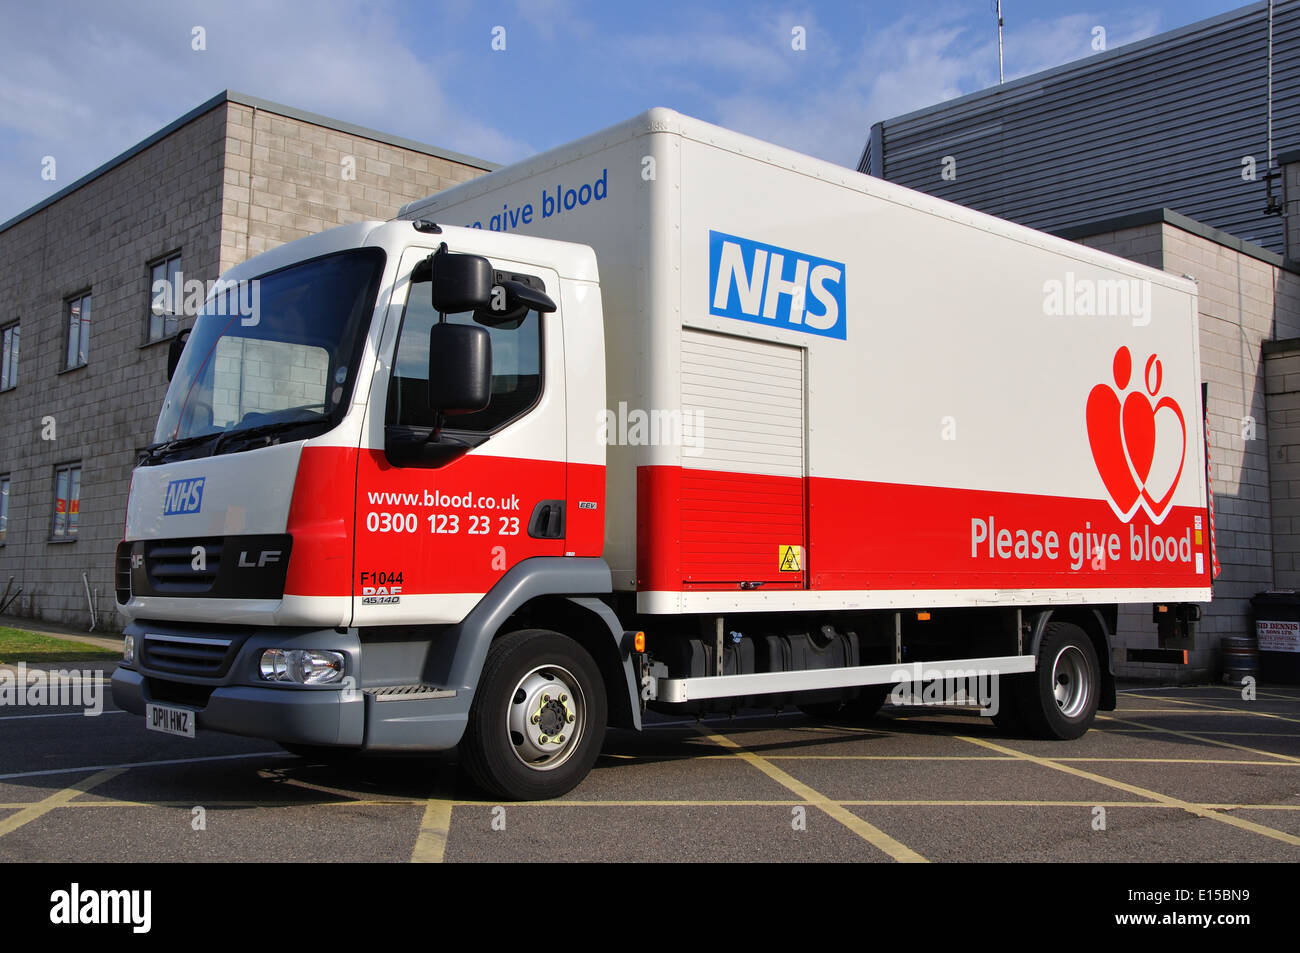 NHS blood donation lorry, Skegness, Lincolnshire, England, UK - Stock Image